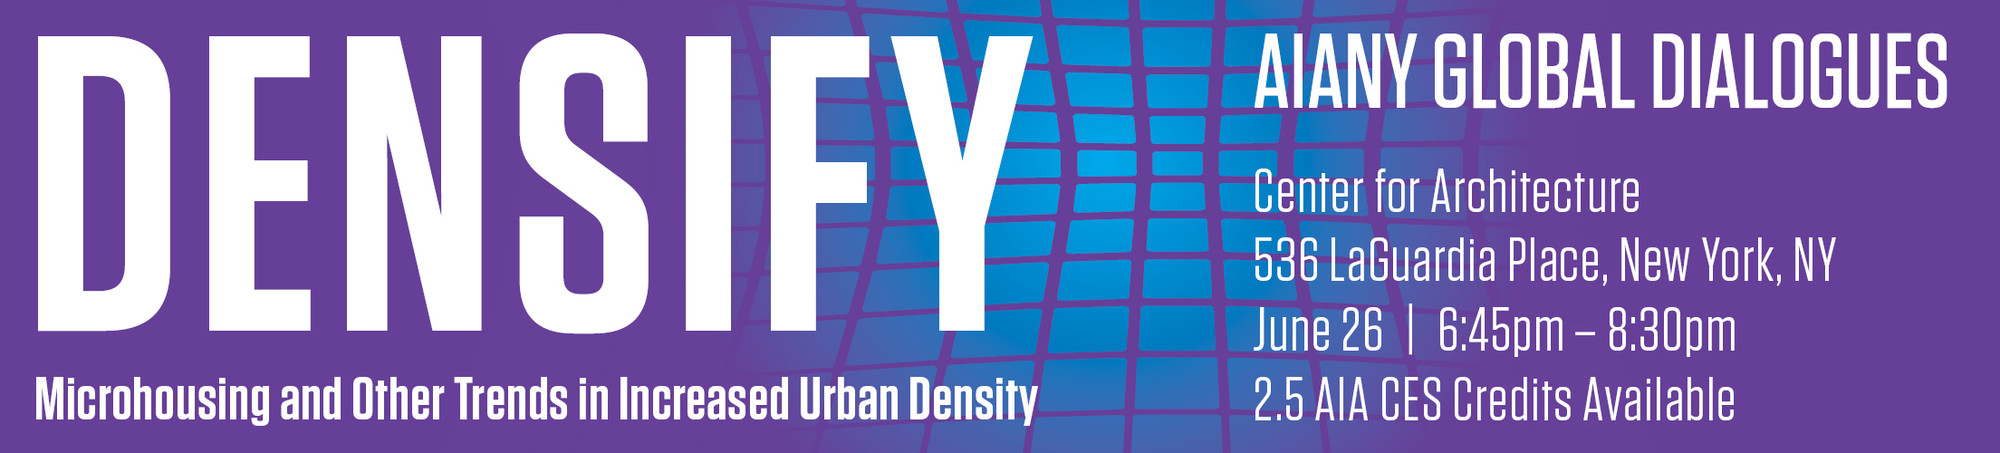 'Densify' Discussion at the Center for Architecture, Courtesy of AIA New York